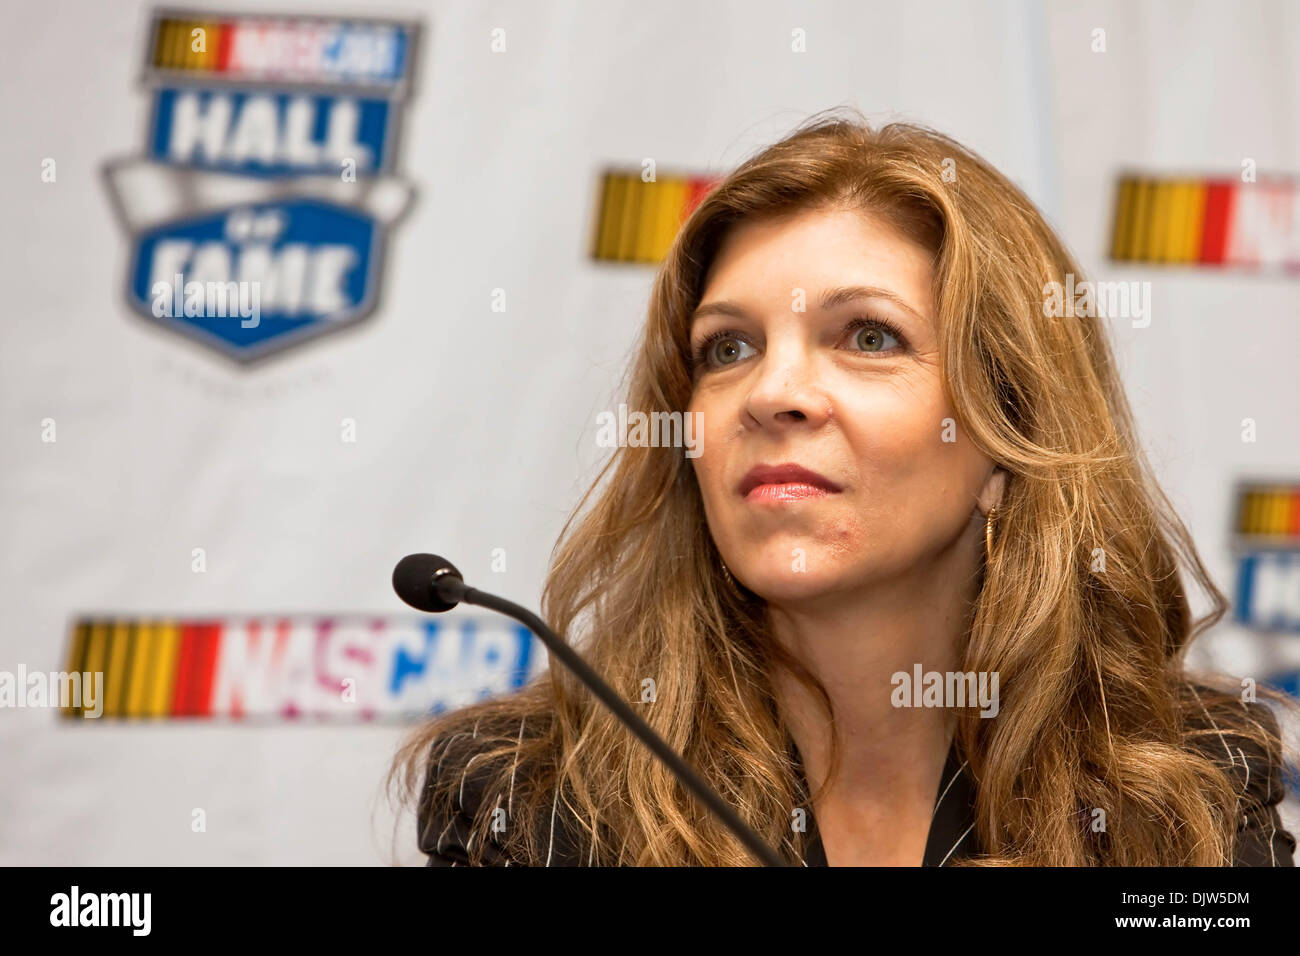 Teresa Earnhardt High Resolution Stock Photography And Images Alamy Teresa earnhardt was the third wife of nascar legend dale earnhardt sr. https www alamy com teresa earnhardt speaks in the media room during the inaugural nascar image63248016 html